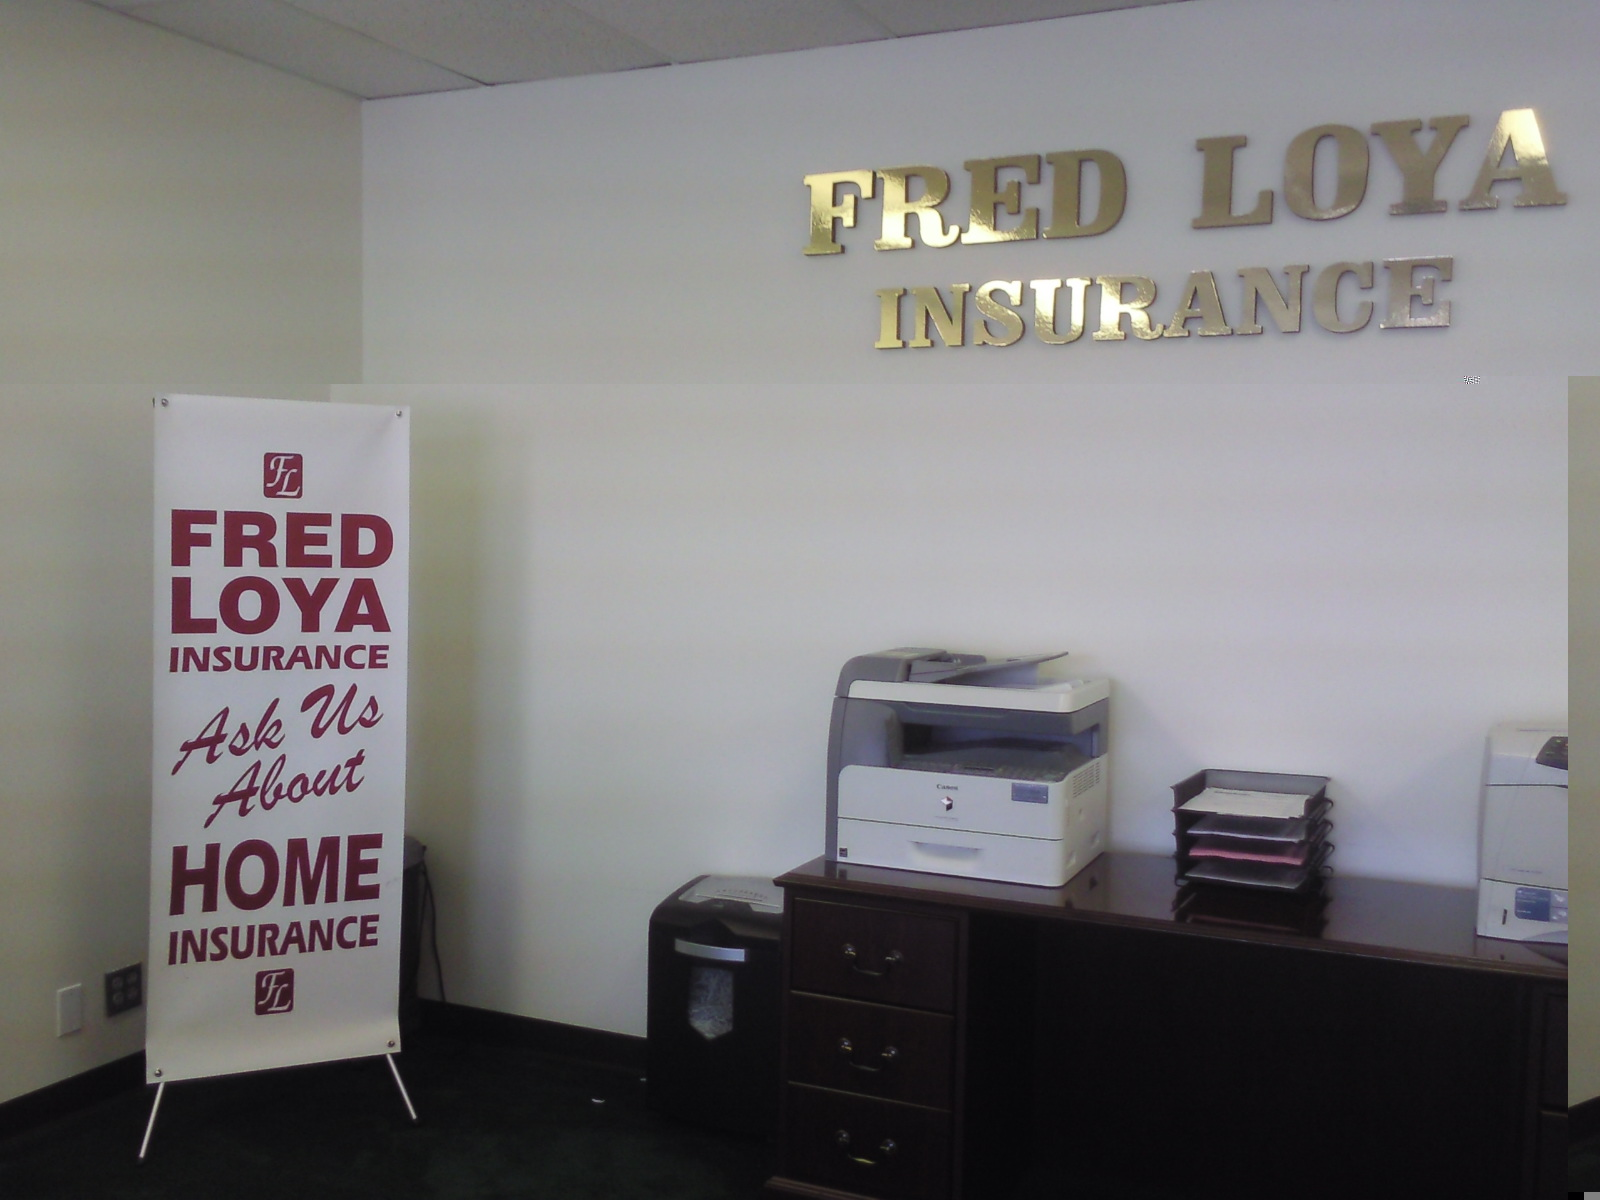 Fred Loya Insurance Quote Fred Loya Insurance Quotes Http Carinsurancesinfo Net Fred Loya